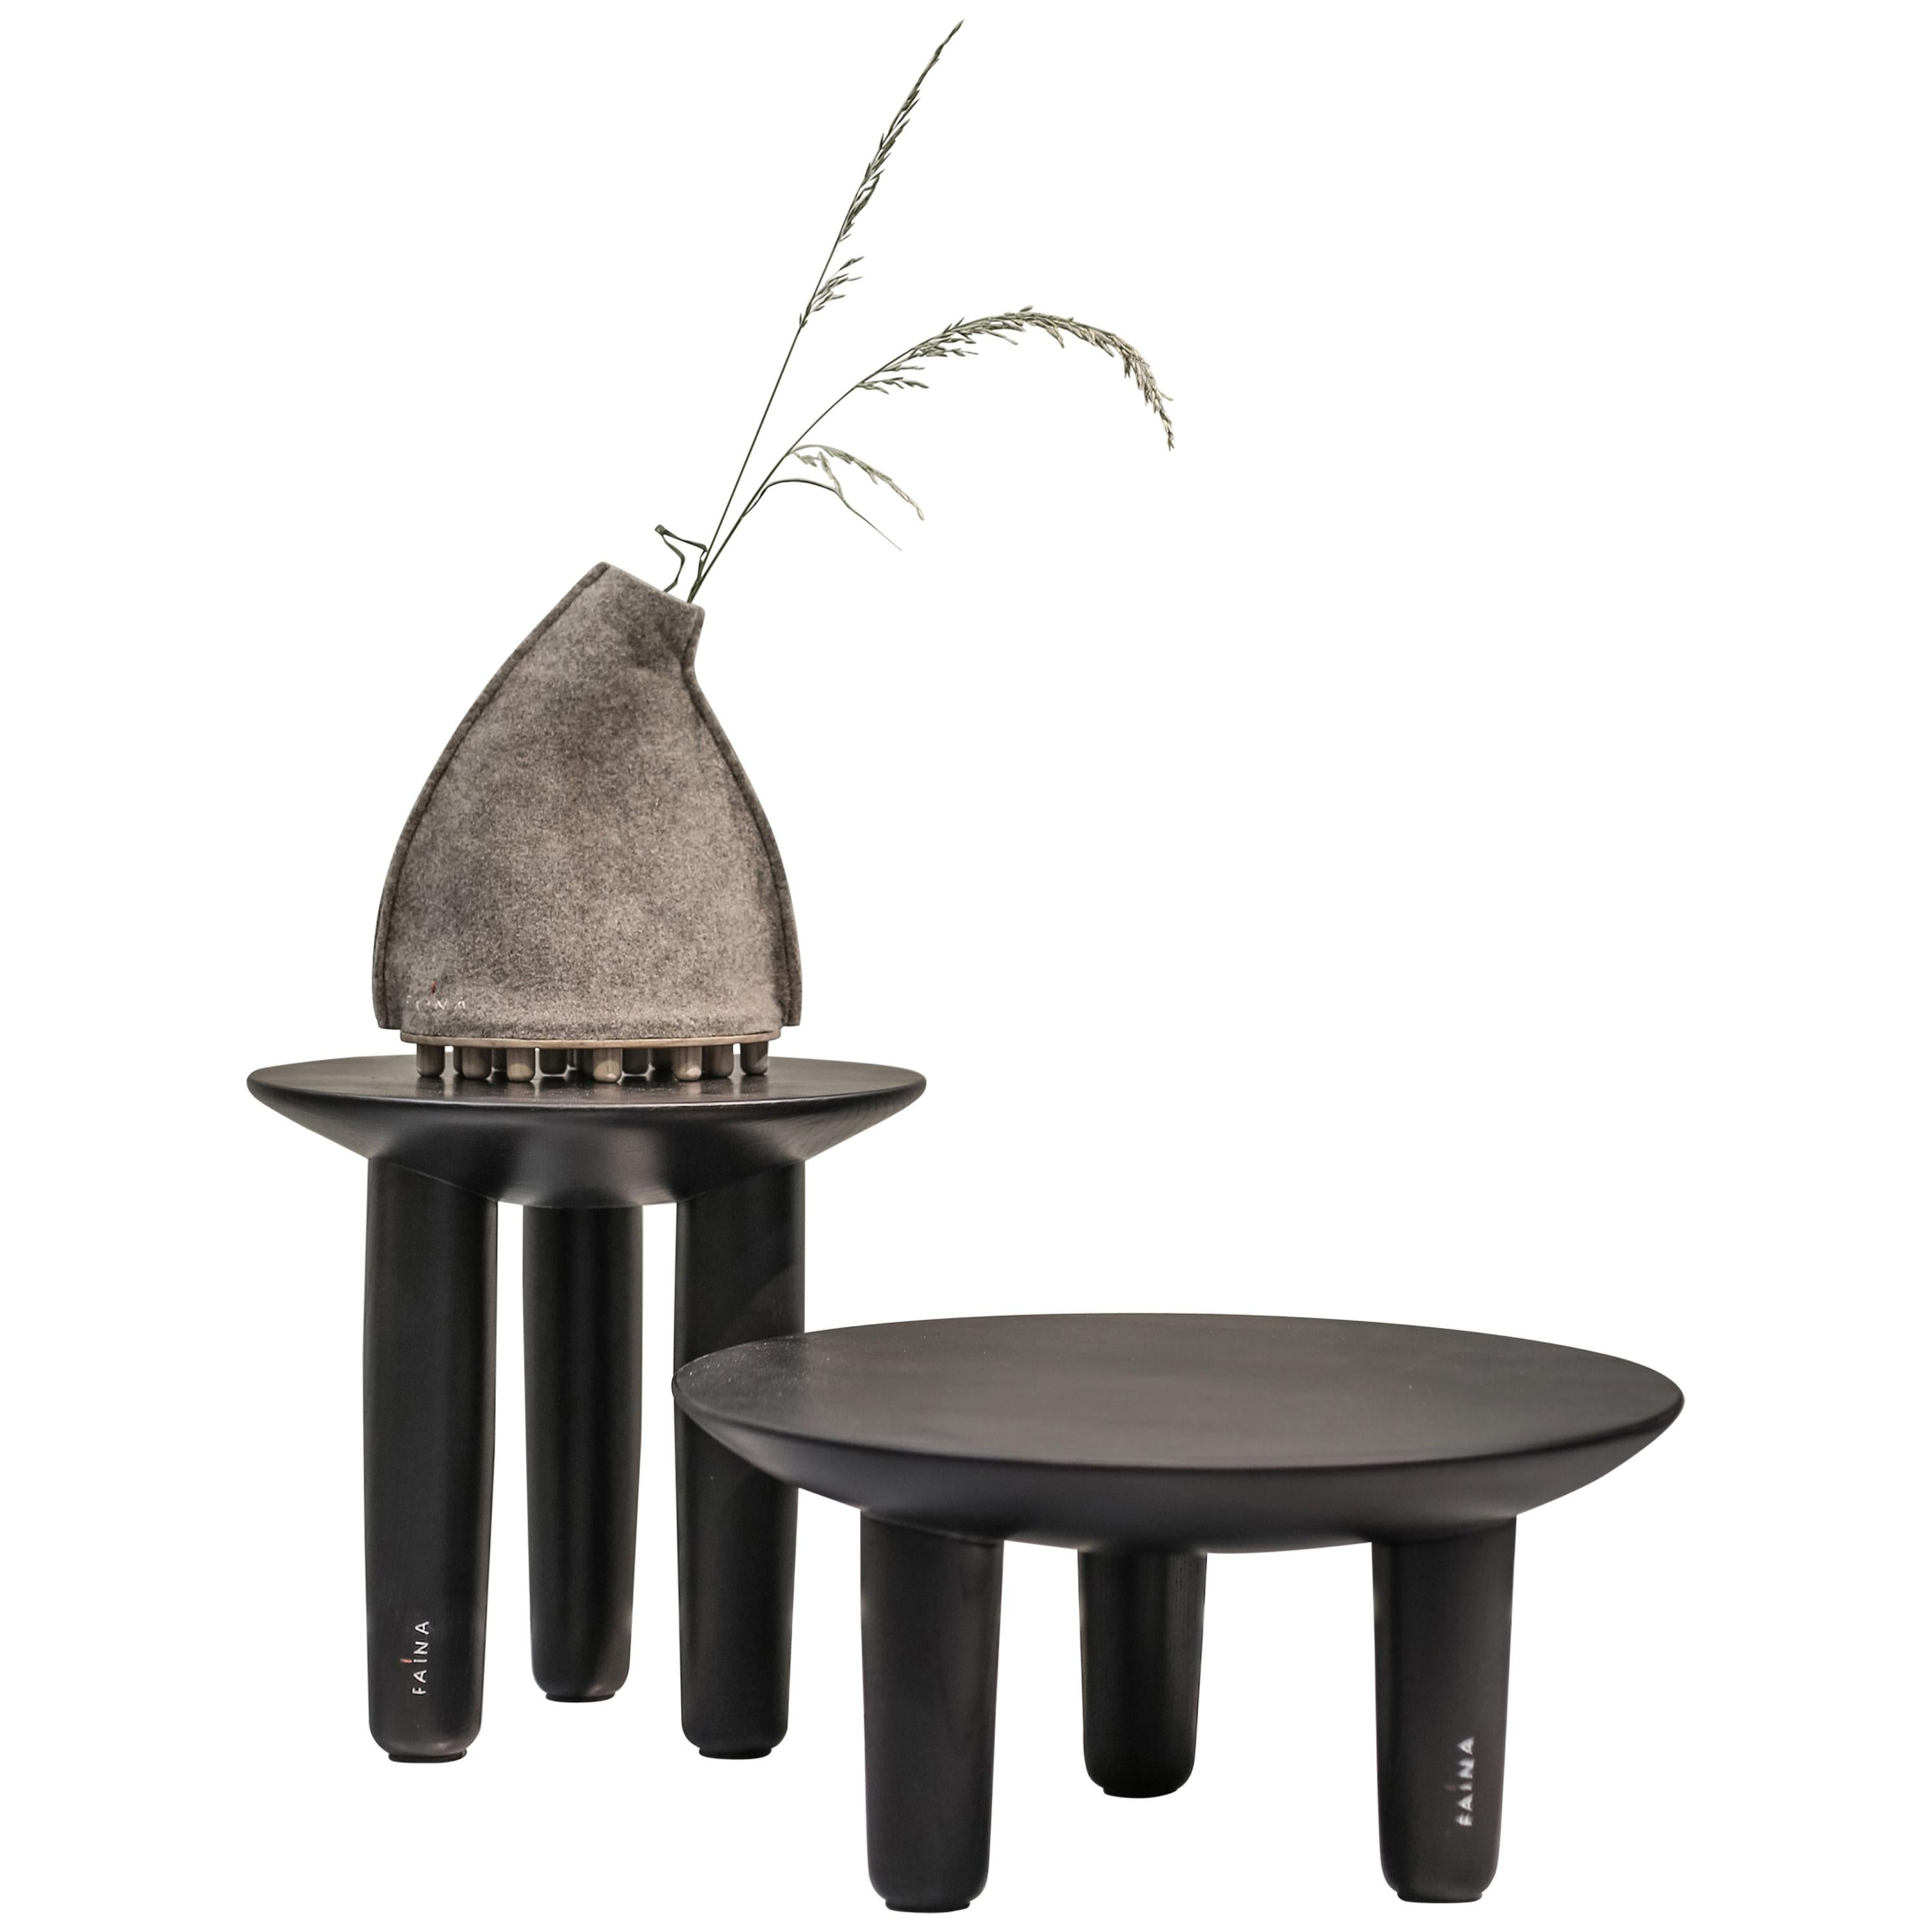 Pair of Ash Contemporary Coffee Tables by FAINA